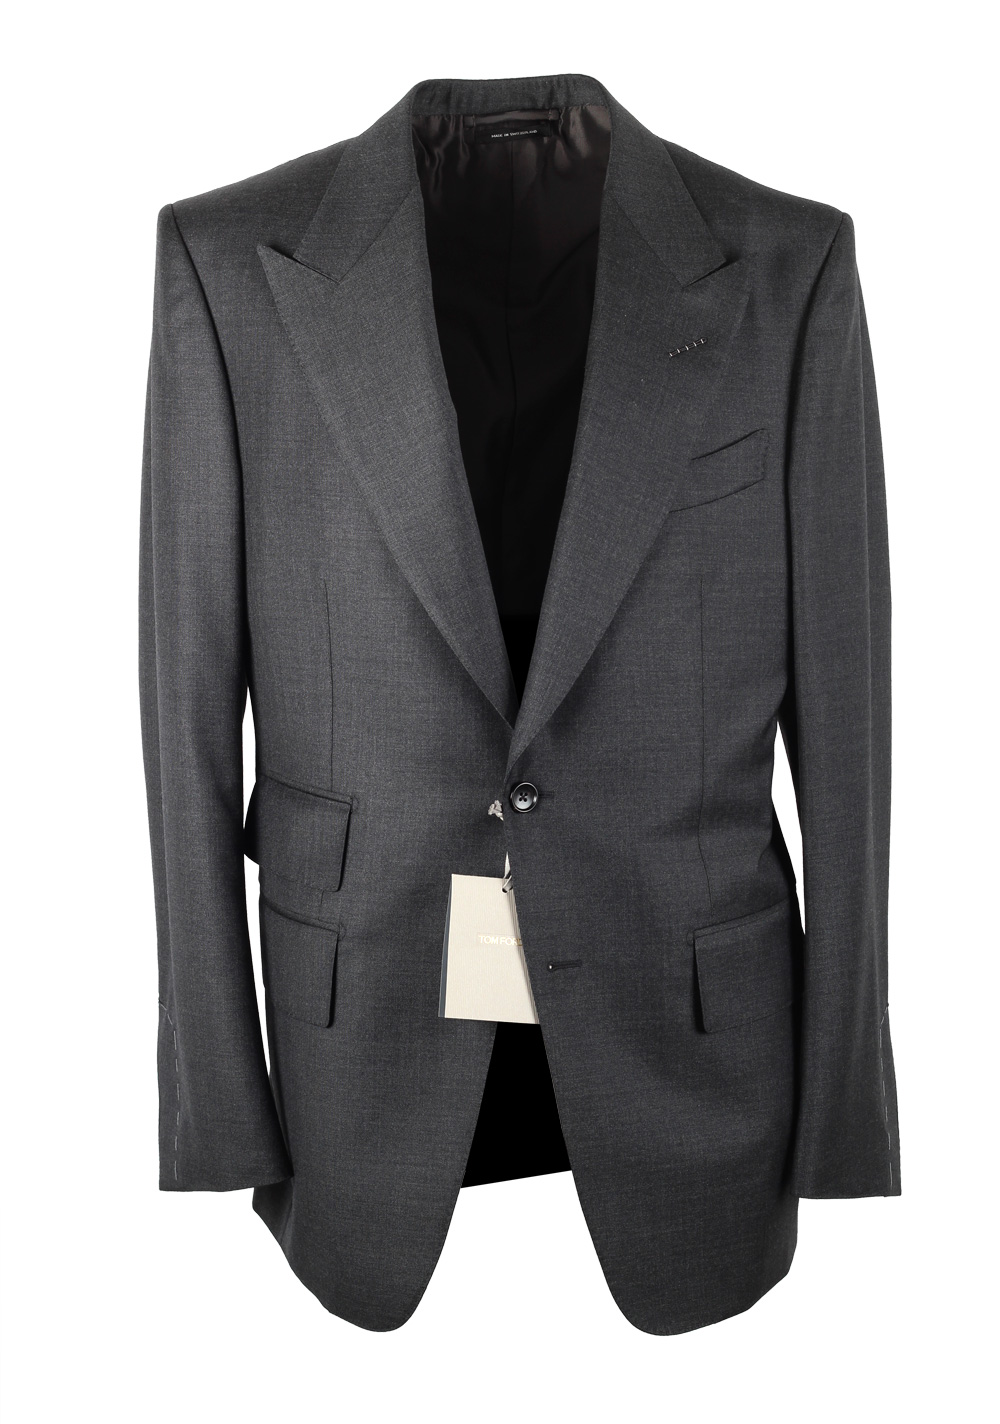 TOM FORD Windsor Signature Solid Gray Suit | Costume Limité